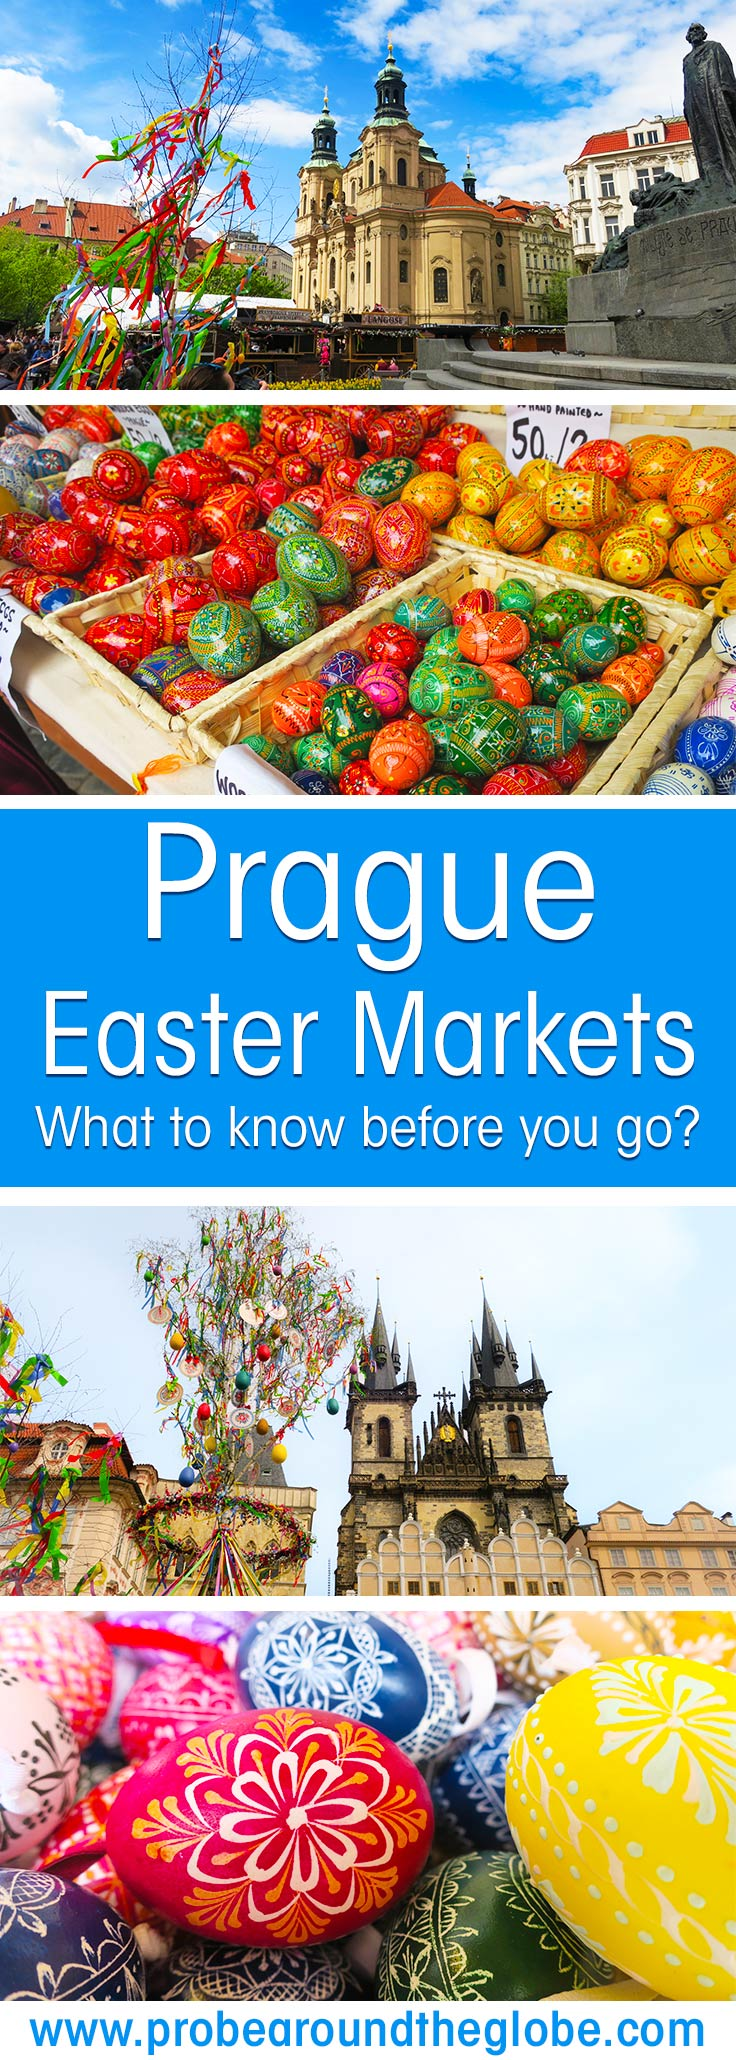 Several images showing the Prague Easter Markets in Spring with Easter Eggs and the Prague's old town square, with text overlay saying: Prague Easter Markets, what to know before you go?